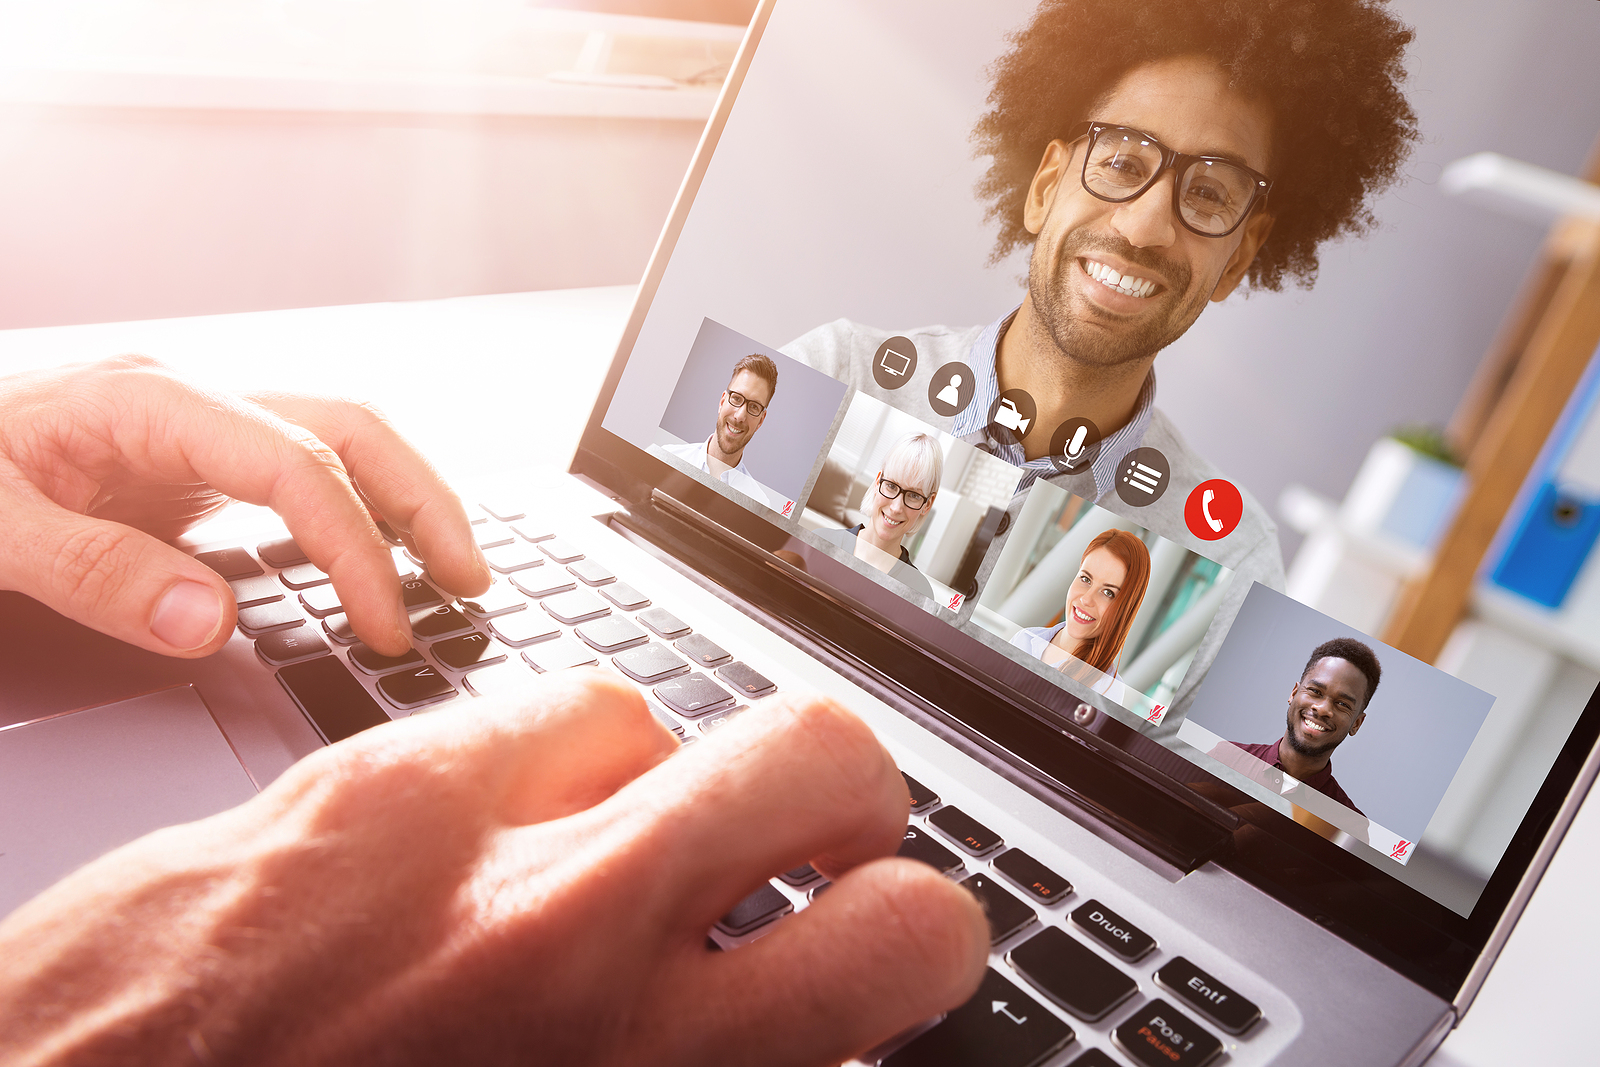 How To Assess An Employer During A Remote Hiring Process